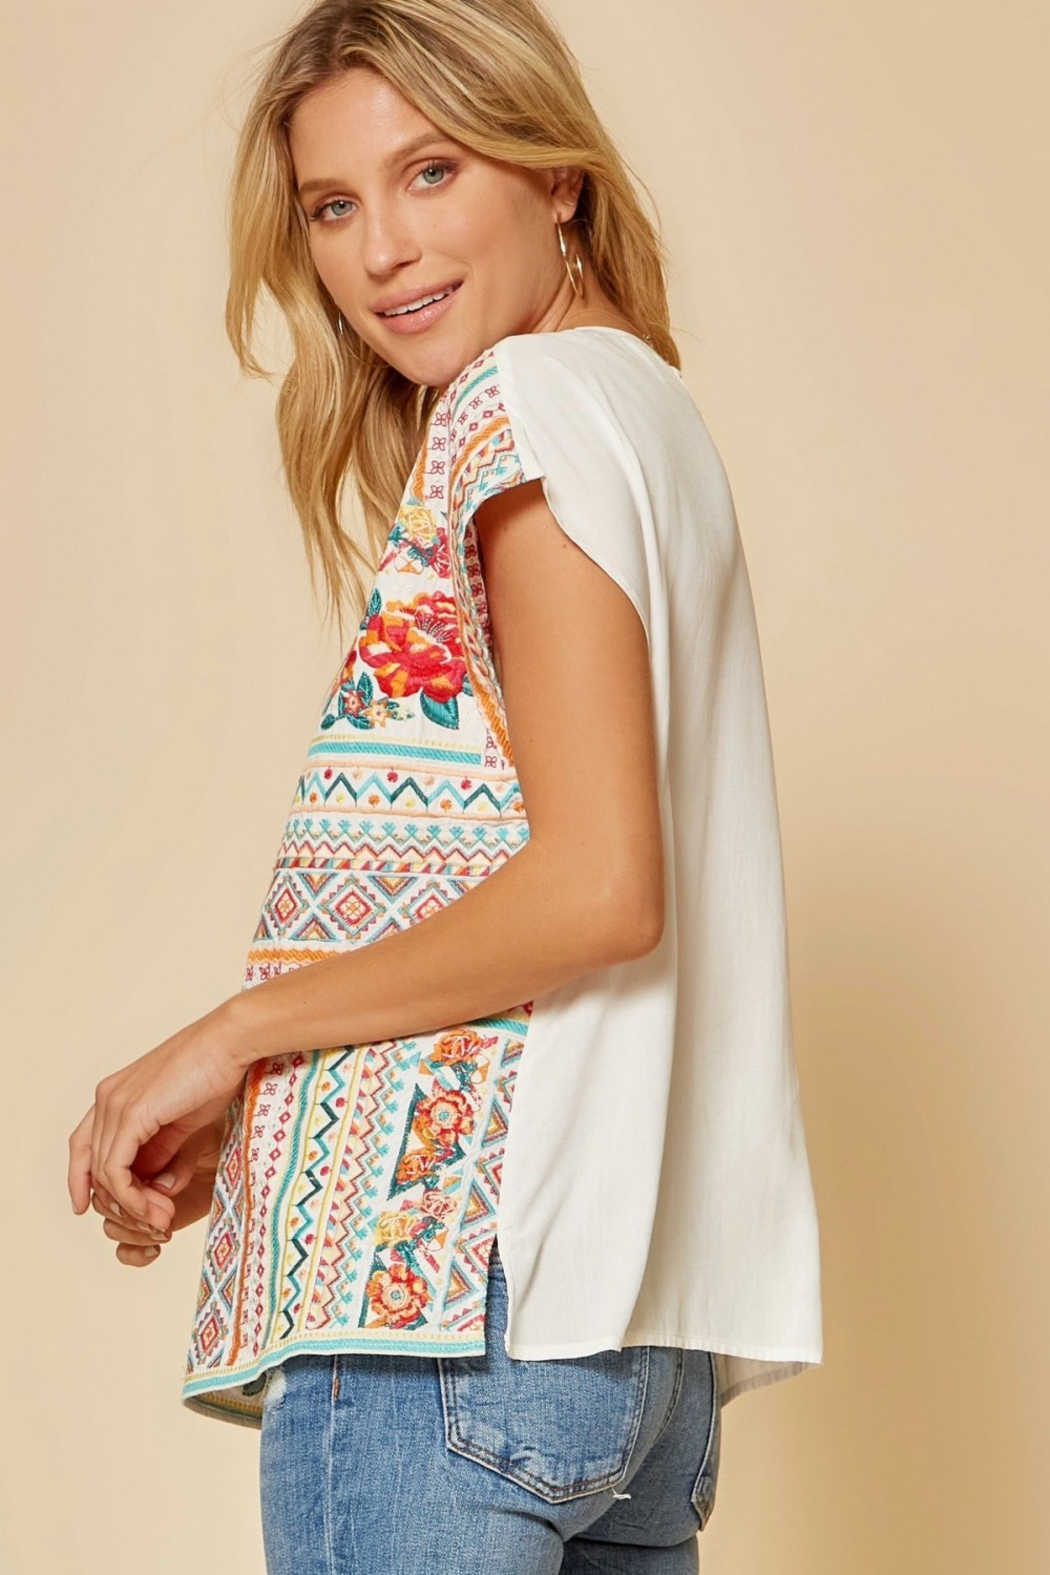 Savanna Jane Classic Beauty Embroidered Top - Back Cropped Image